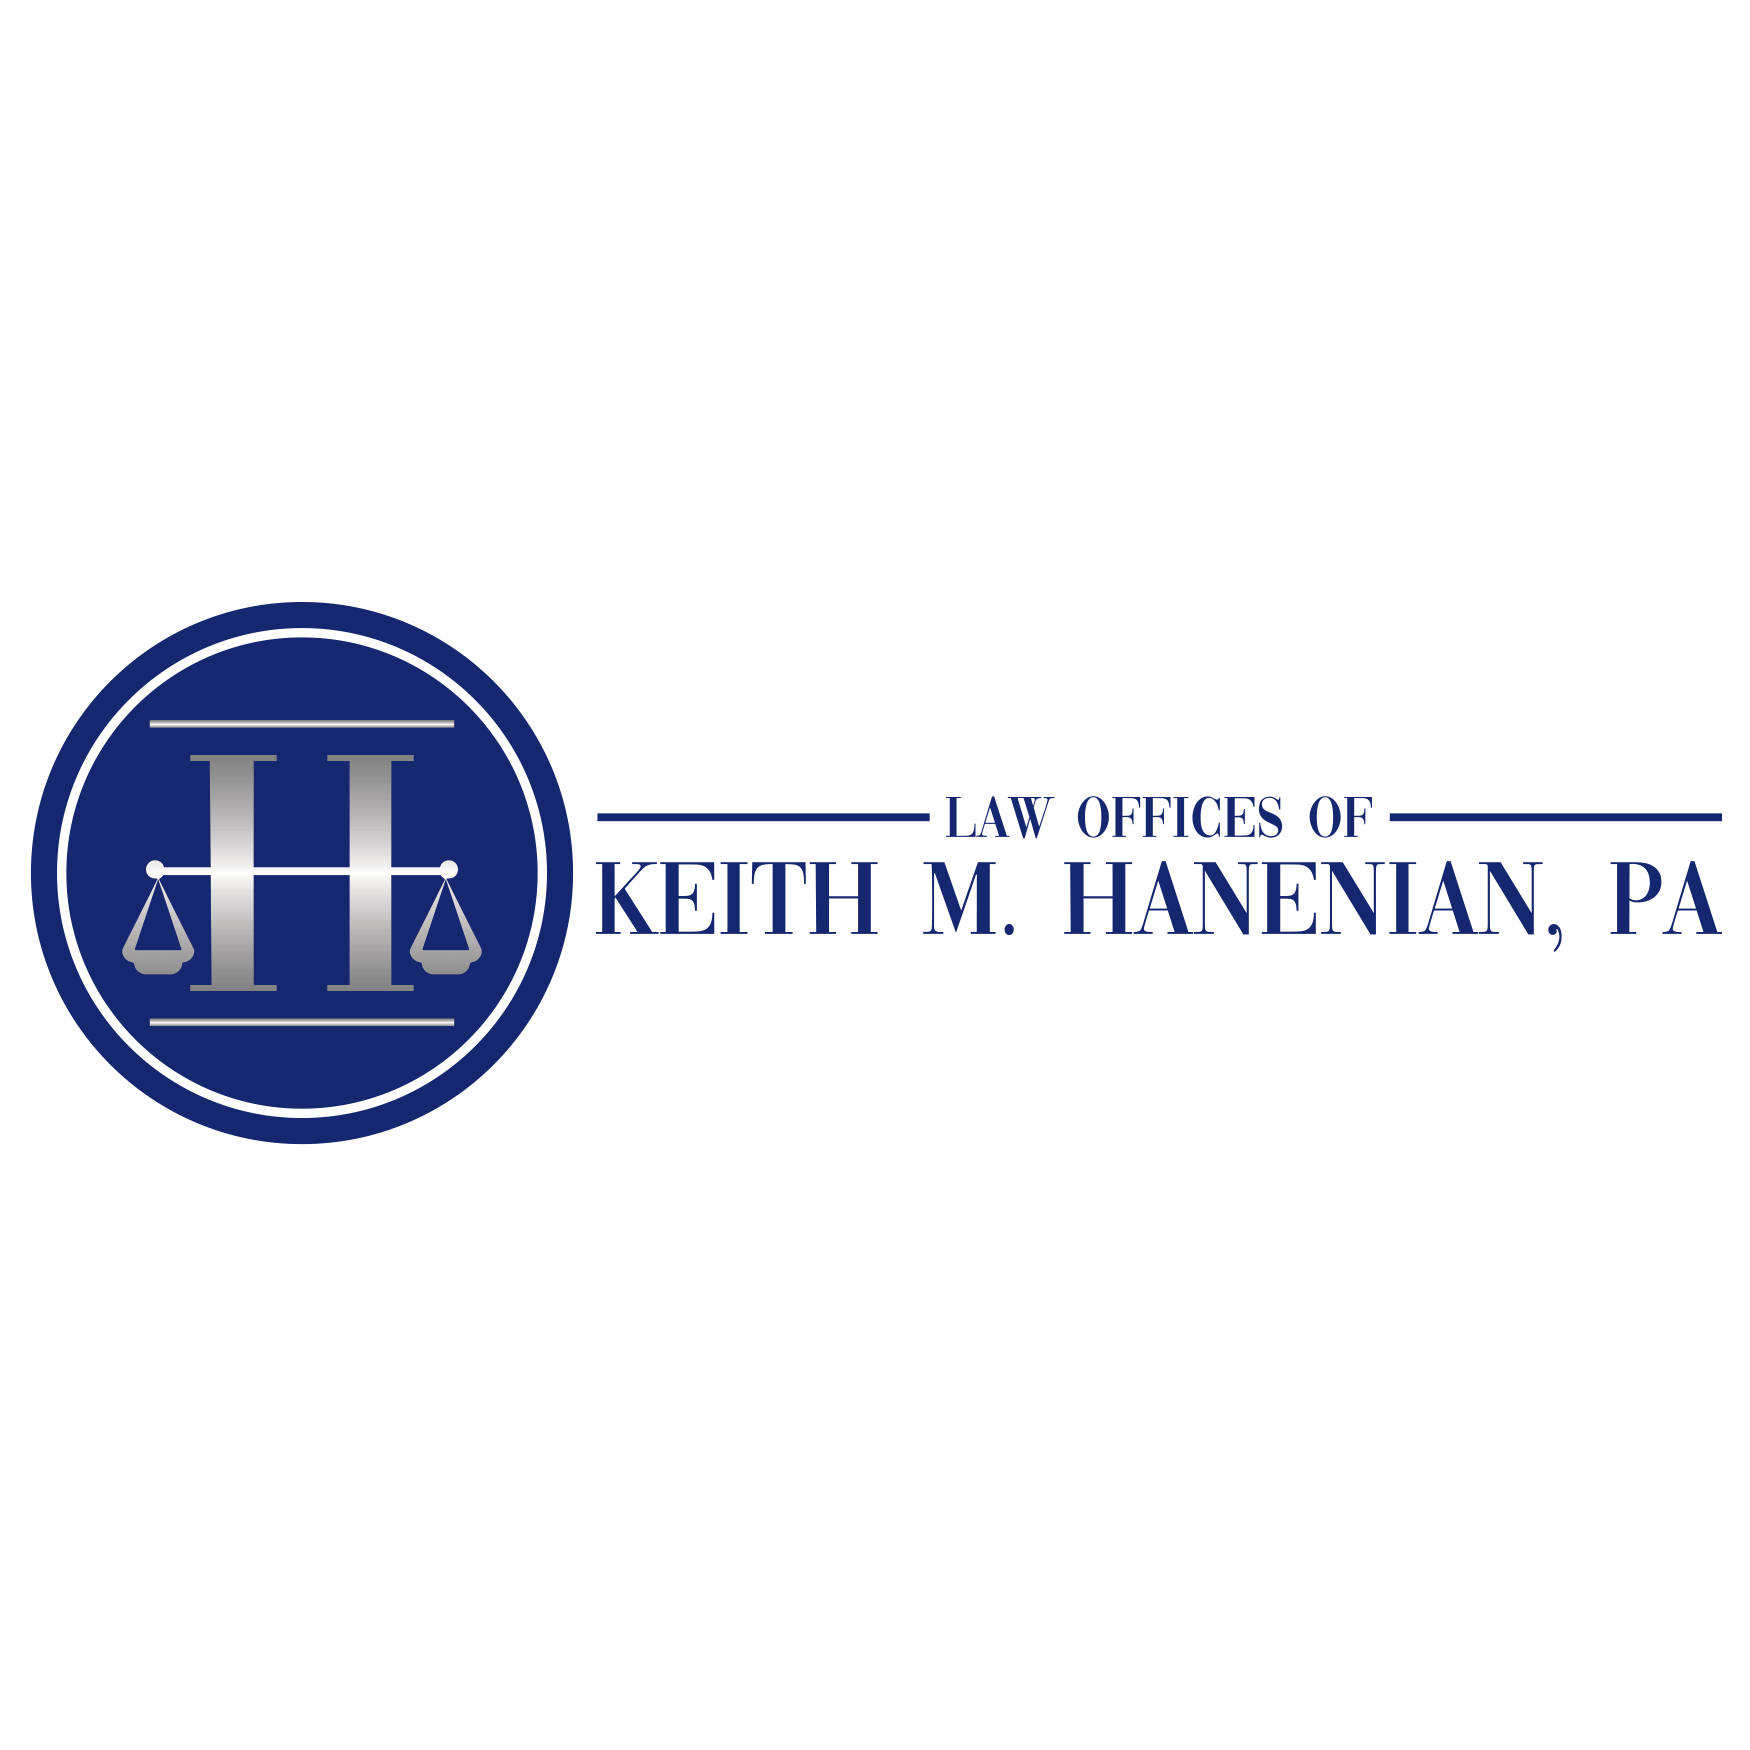 Law Offices of Keith M. Hanenian, PA